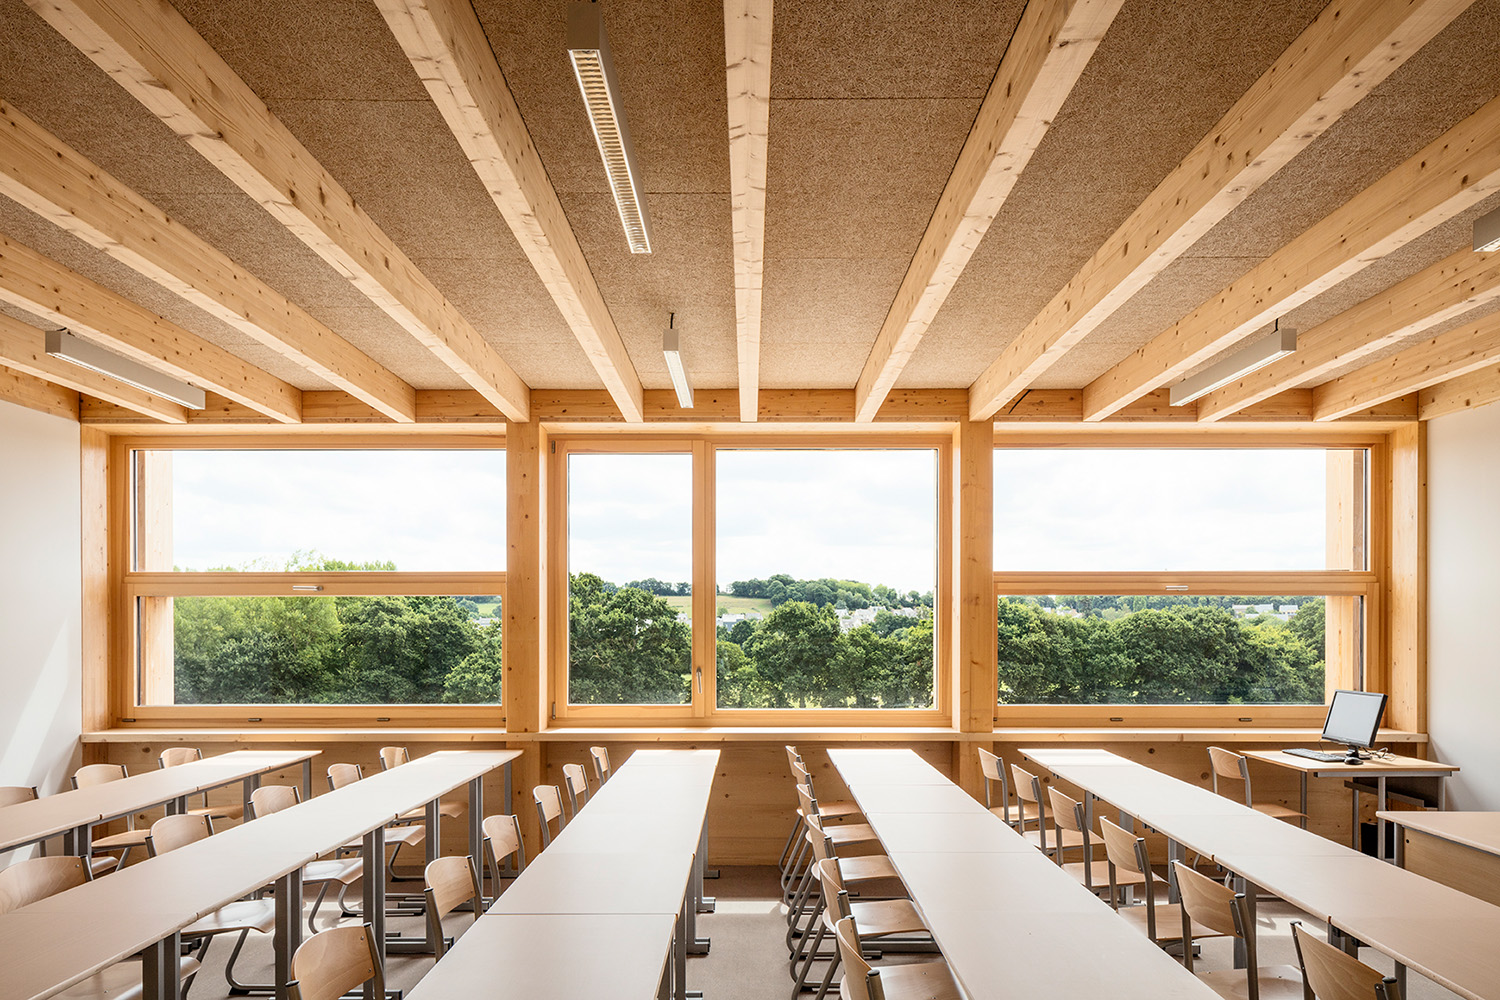 College Lamballe - classrooms with a wide view into the surroundings Luc Boegly